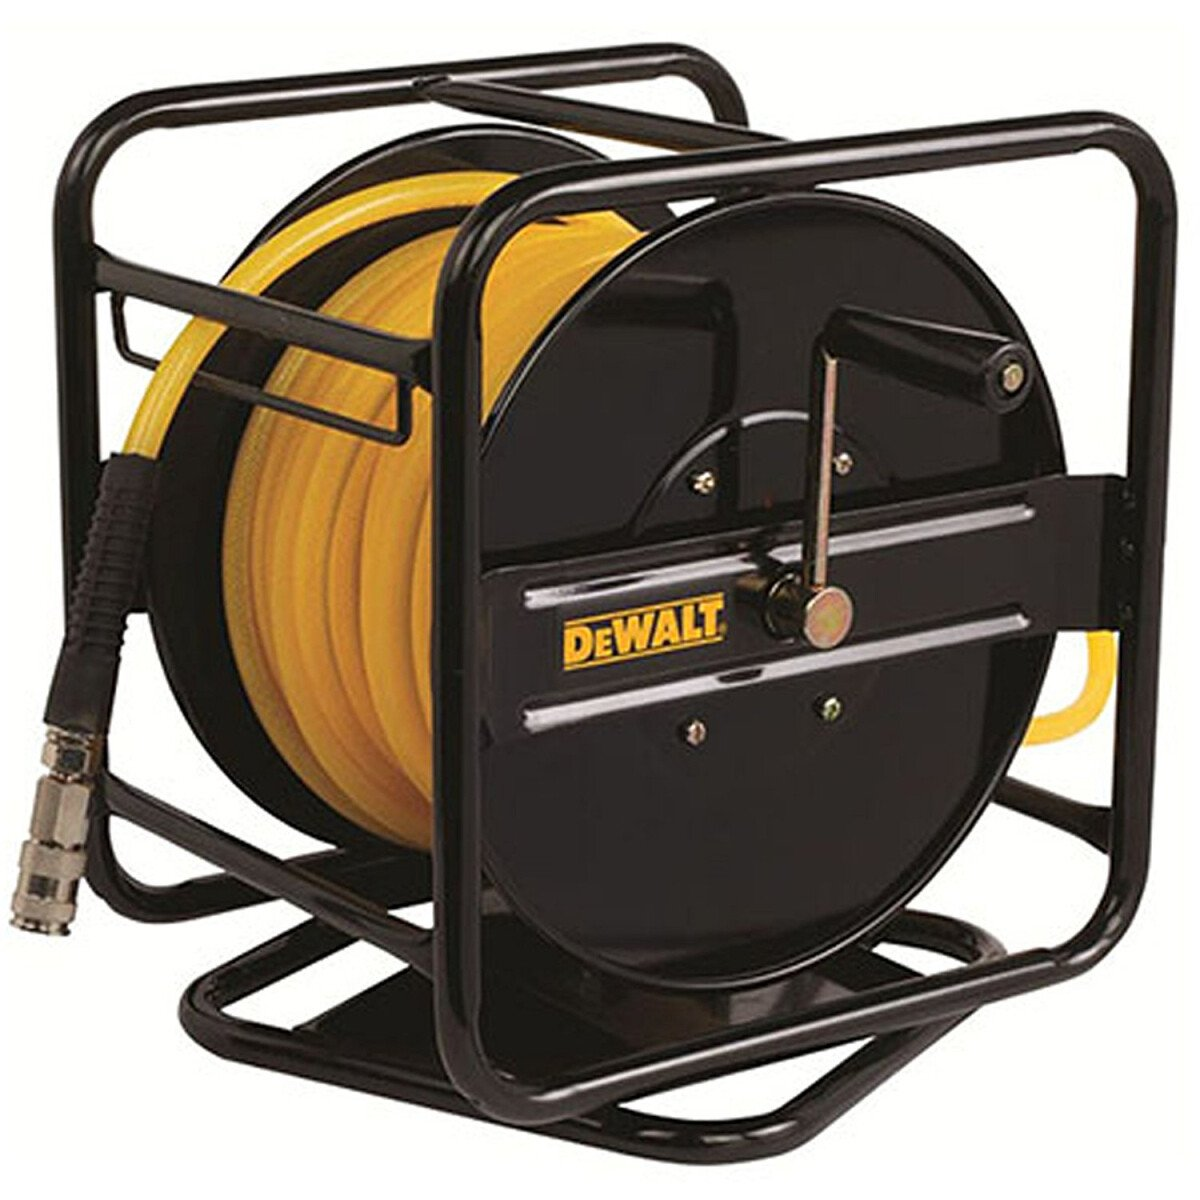 DeWalt DWP-CPACK30 30M Rotating Air Hose Reel